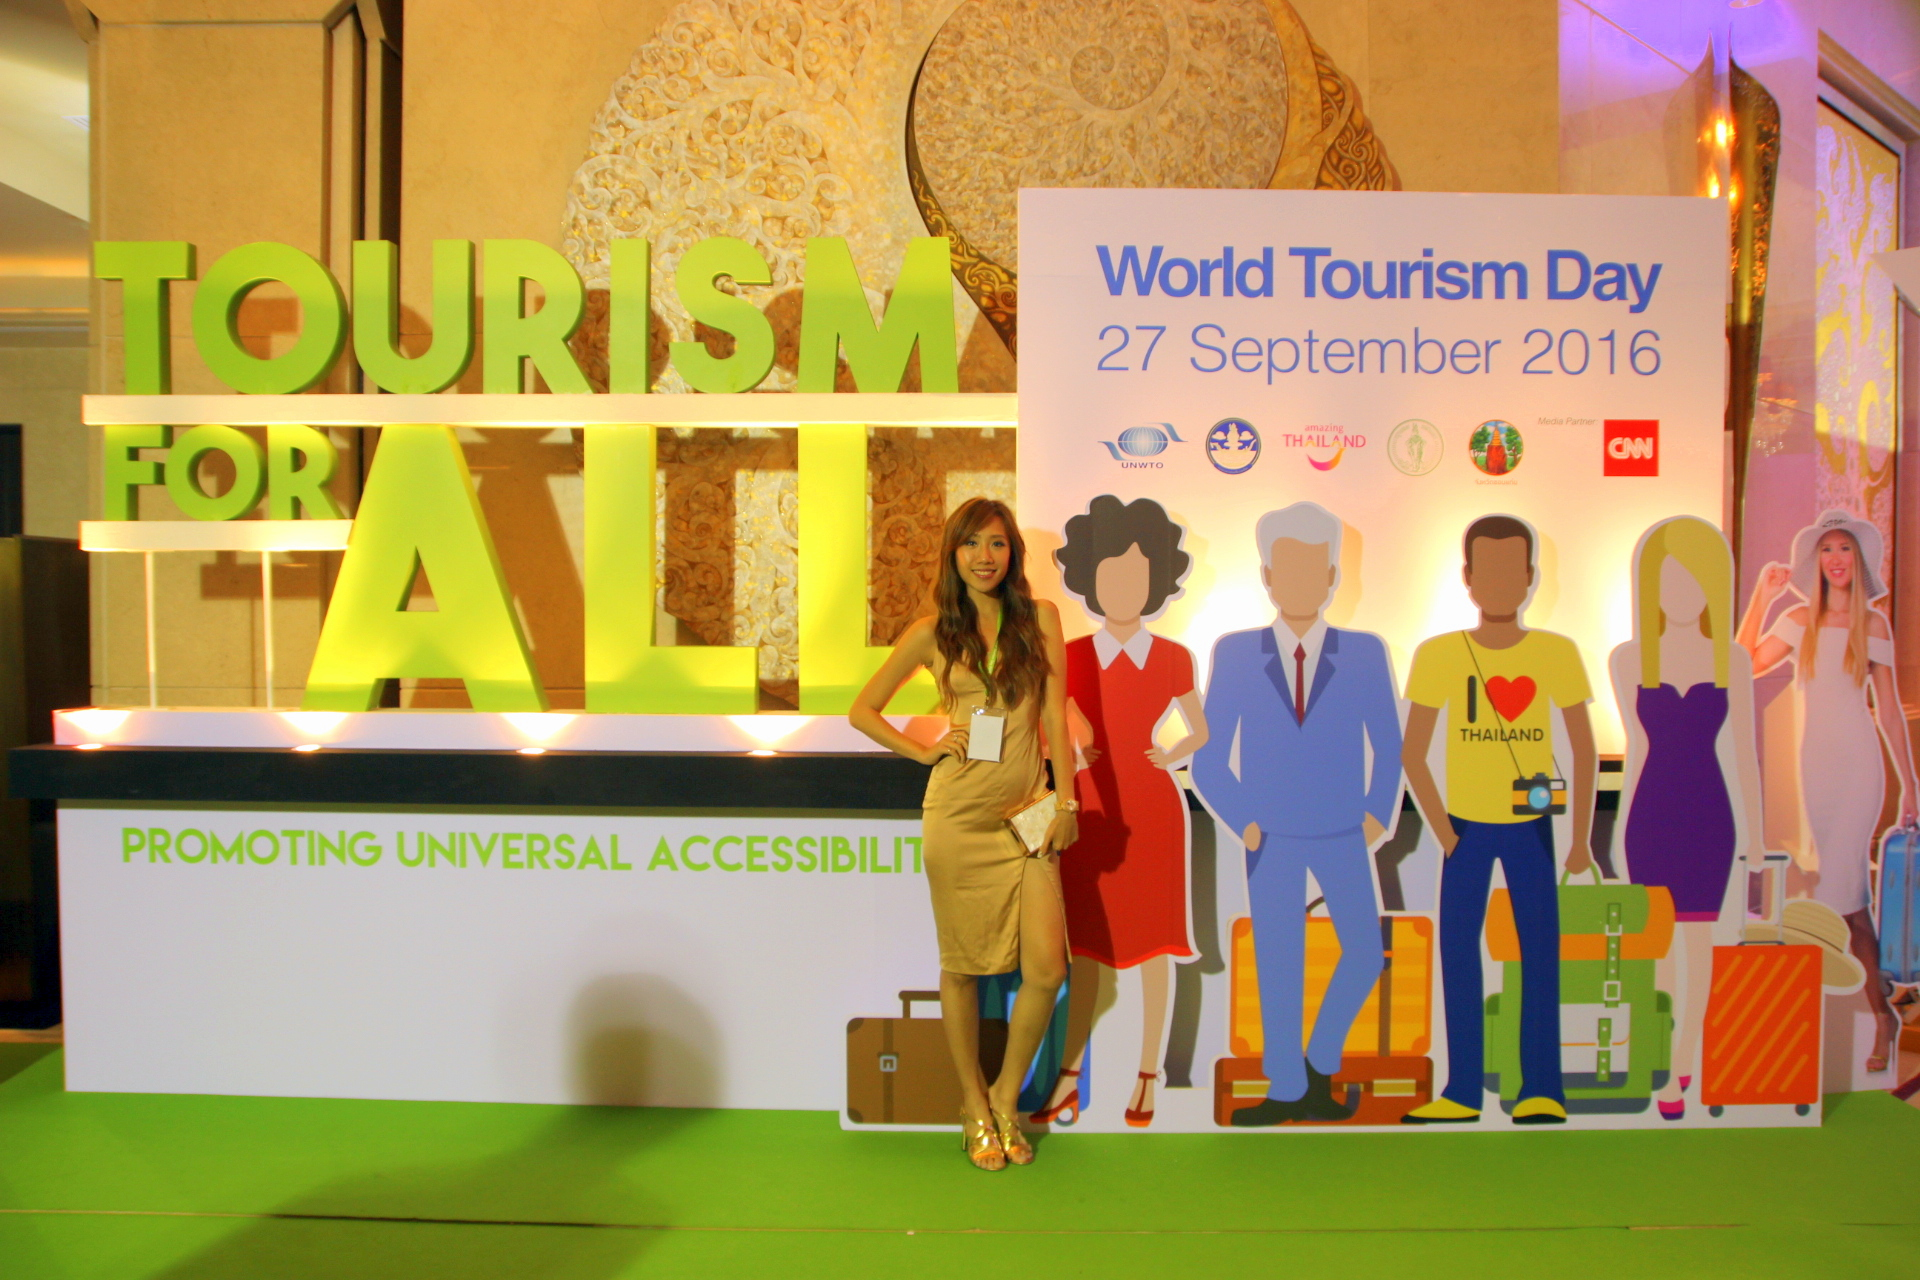 World Tourism Day 2016